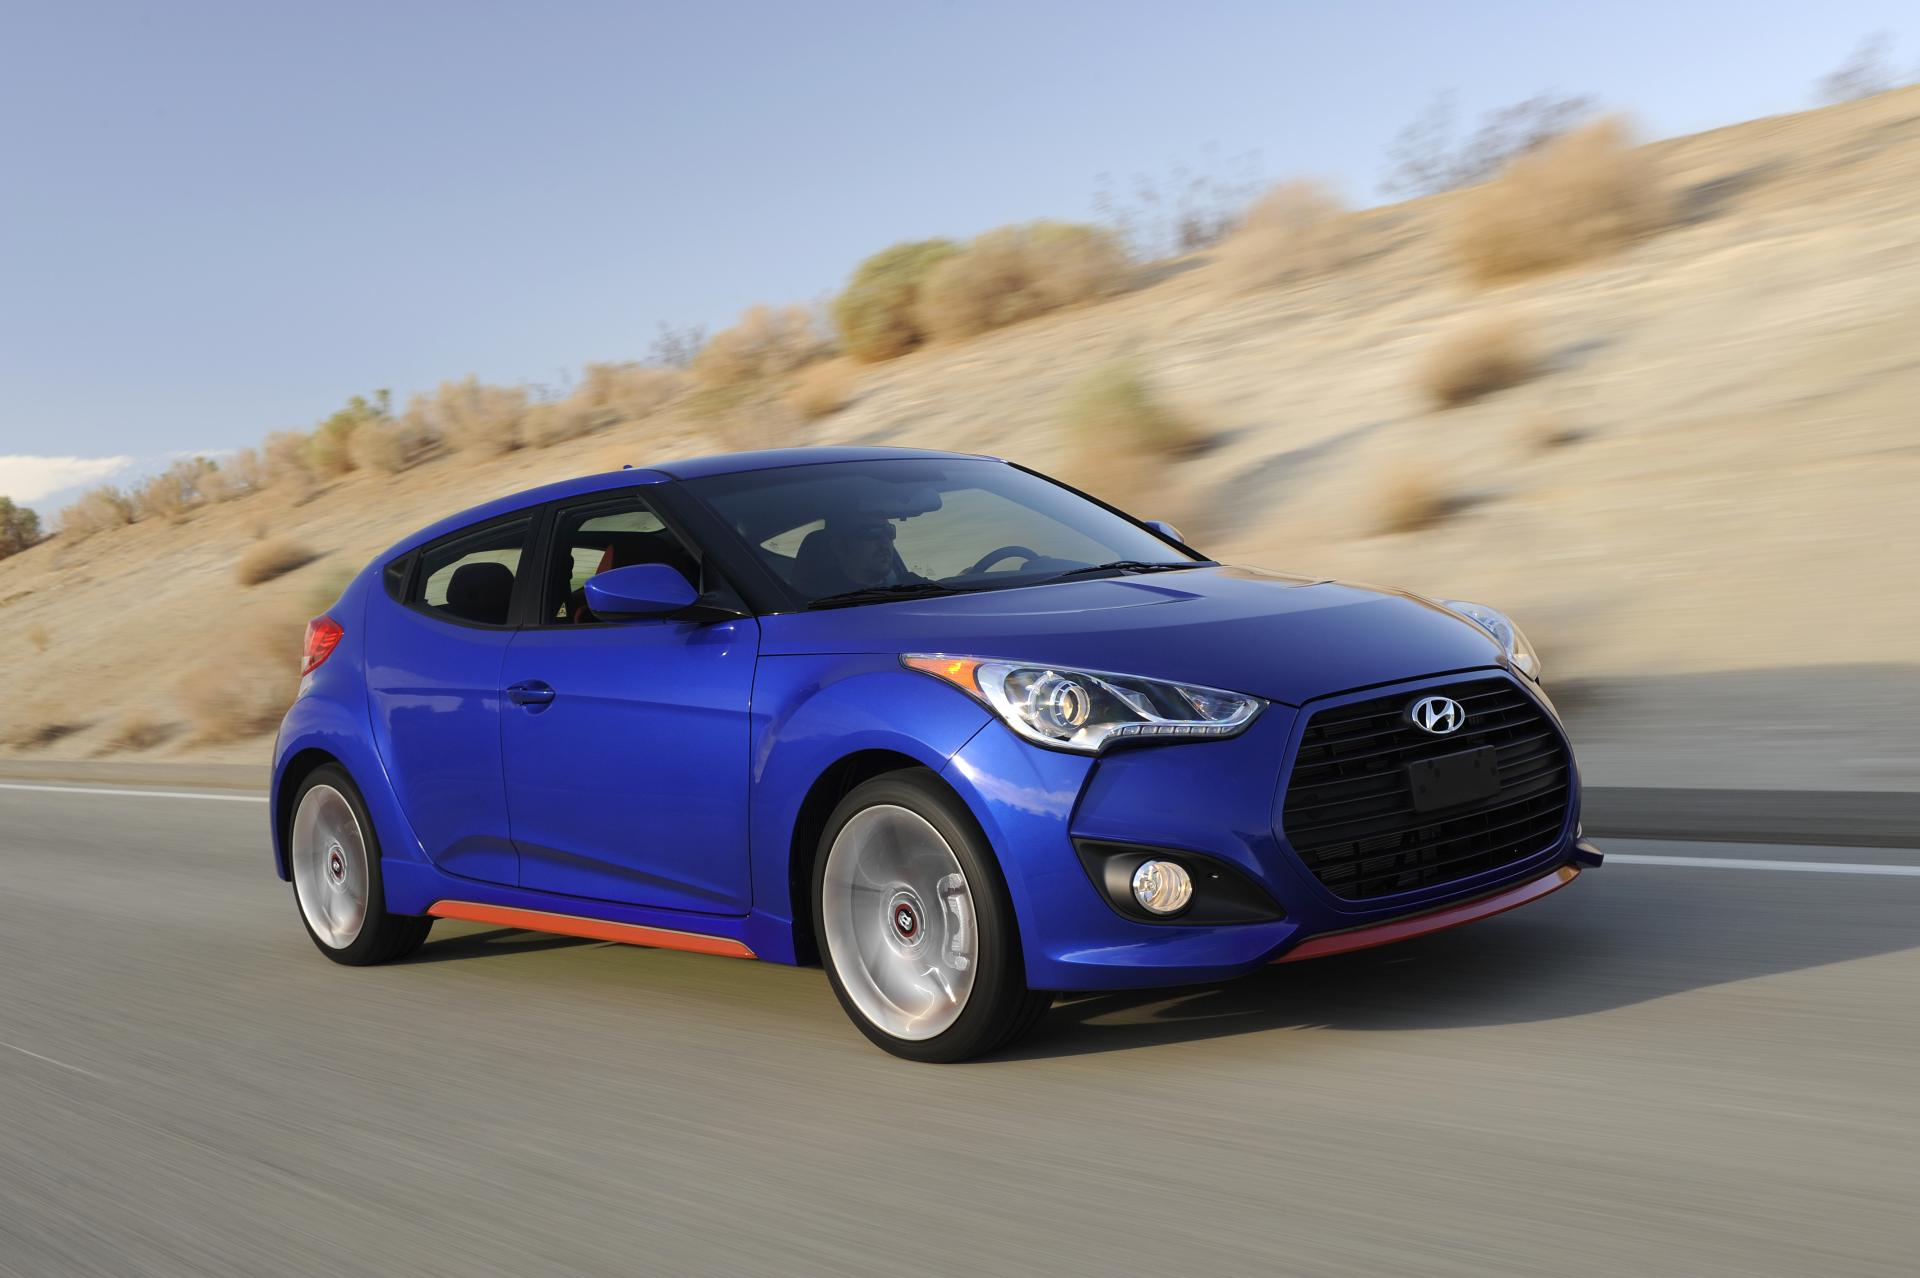 2014 hyundai veloster turbo r spec technical and mechanical specifications. Black Bedroom Furniture Sets. Home Design Ideas